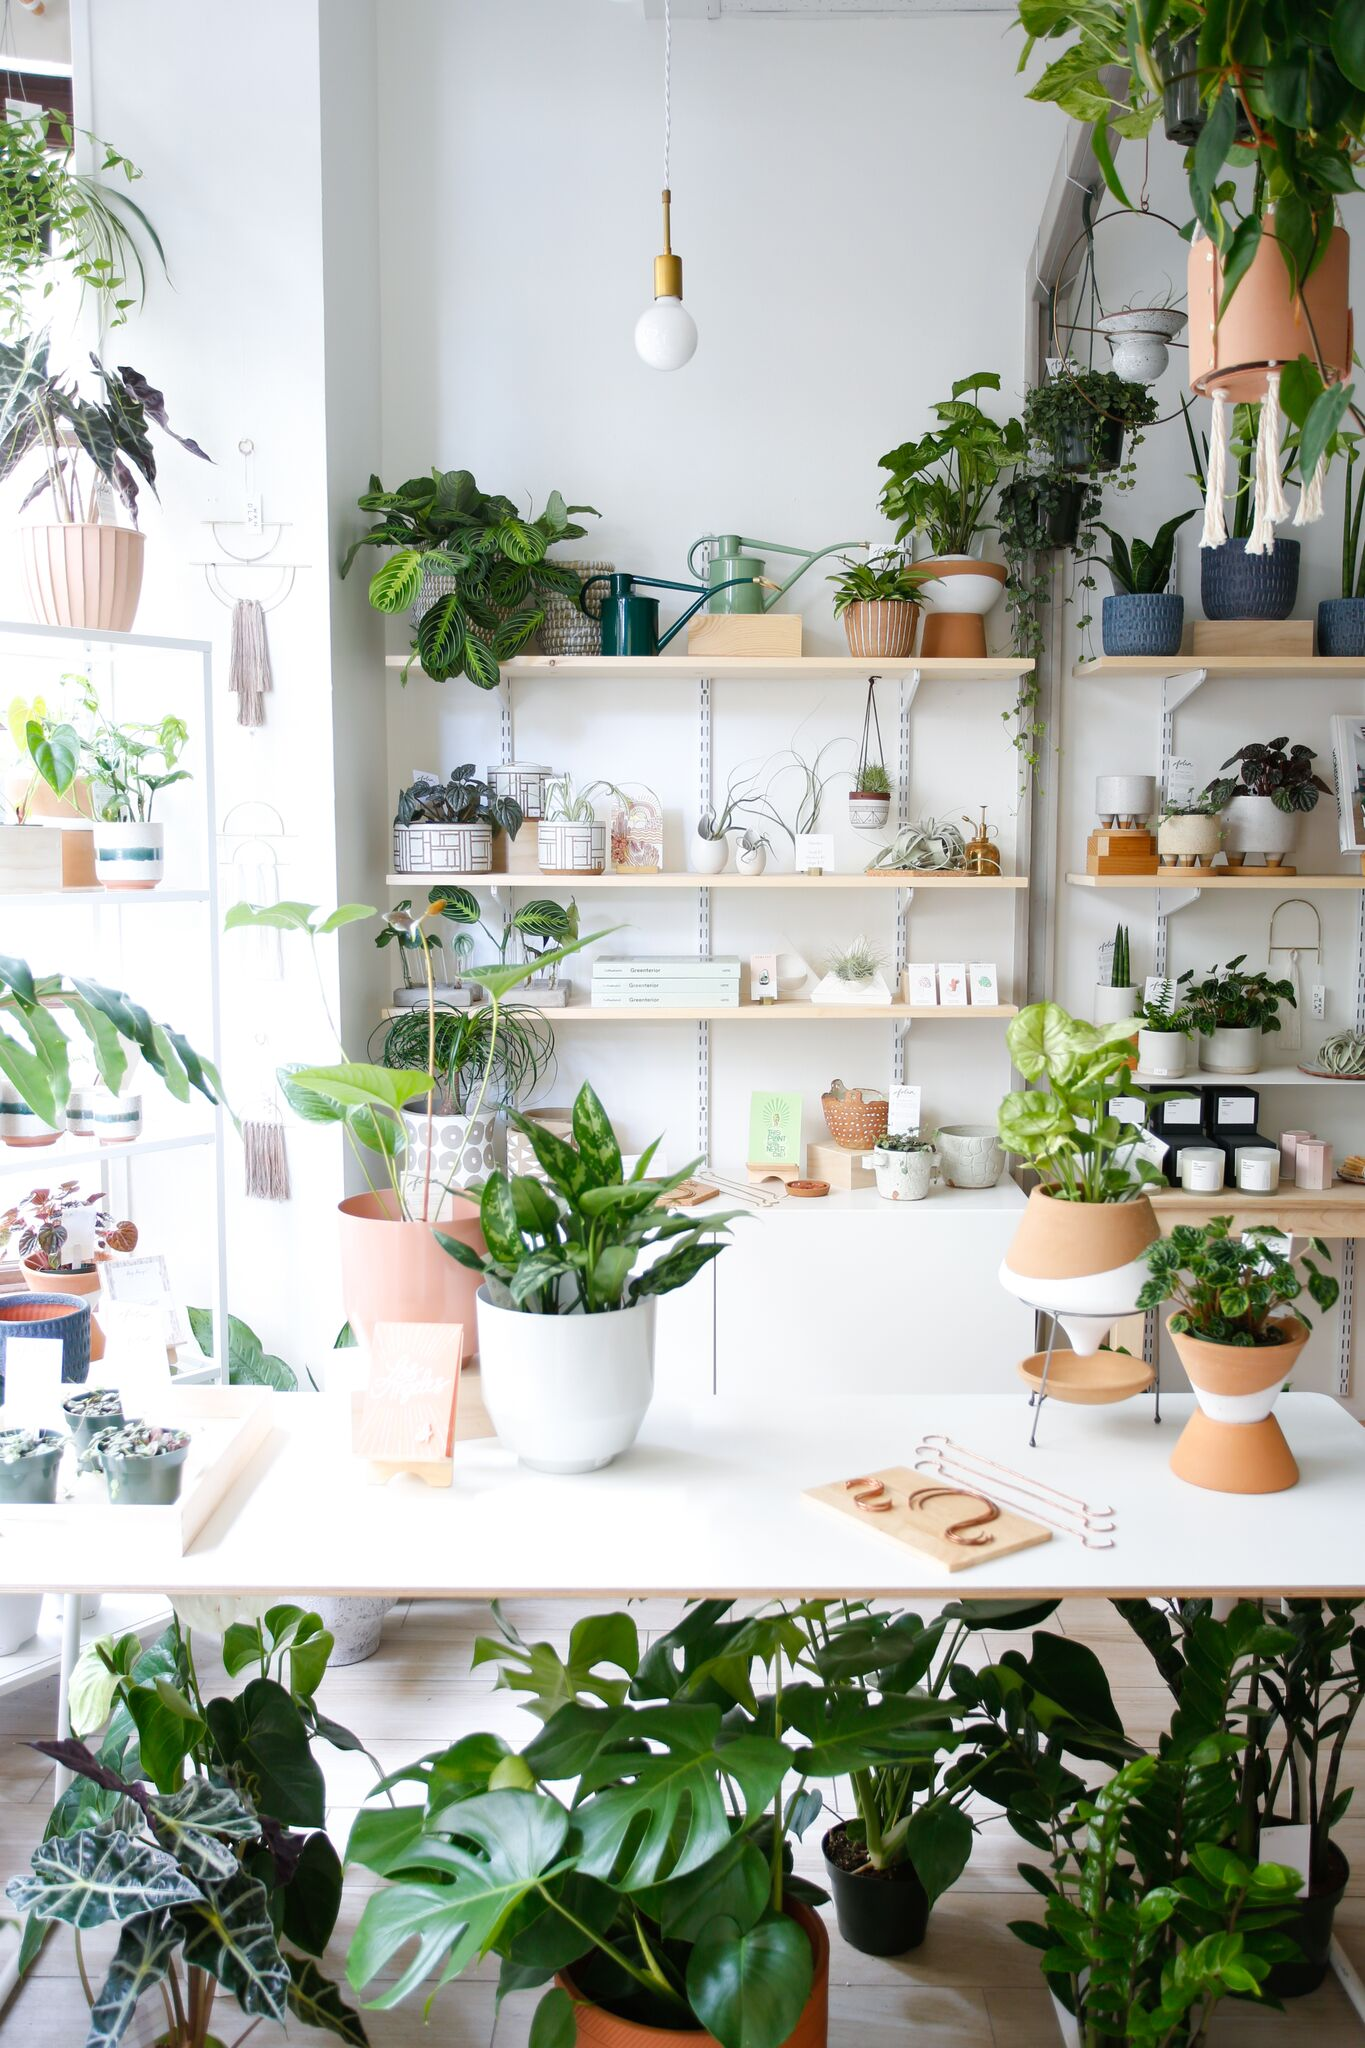 The Chic Houseplants You Should Be Buying in 2018 -